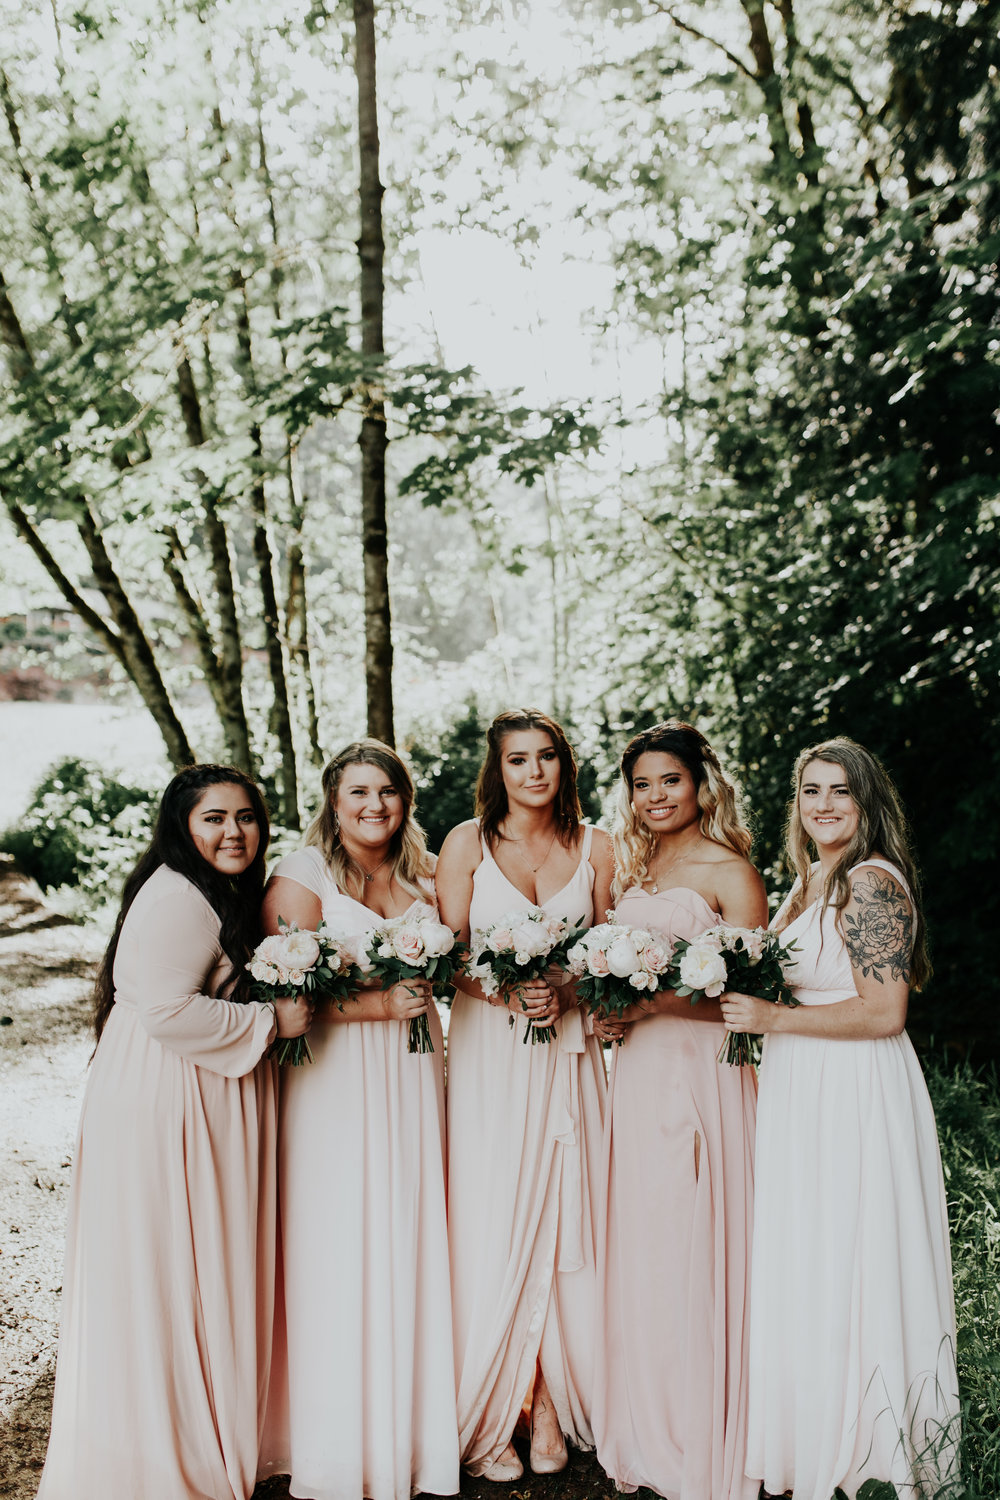 ramirez wedding portland oregon hornings hideout rain moody trendy bridesmaids